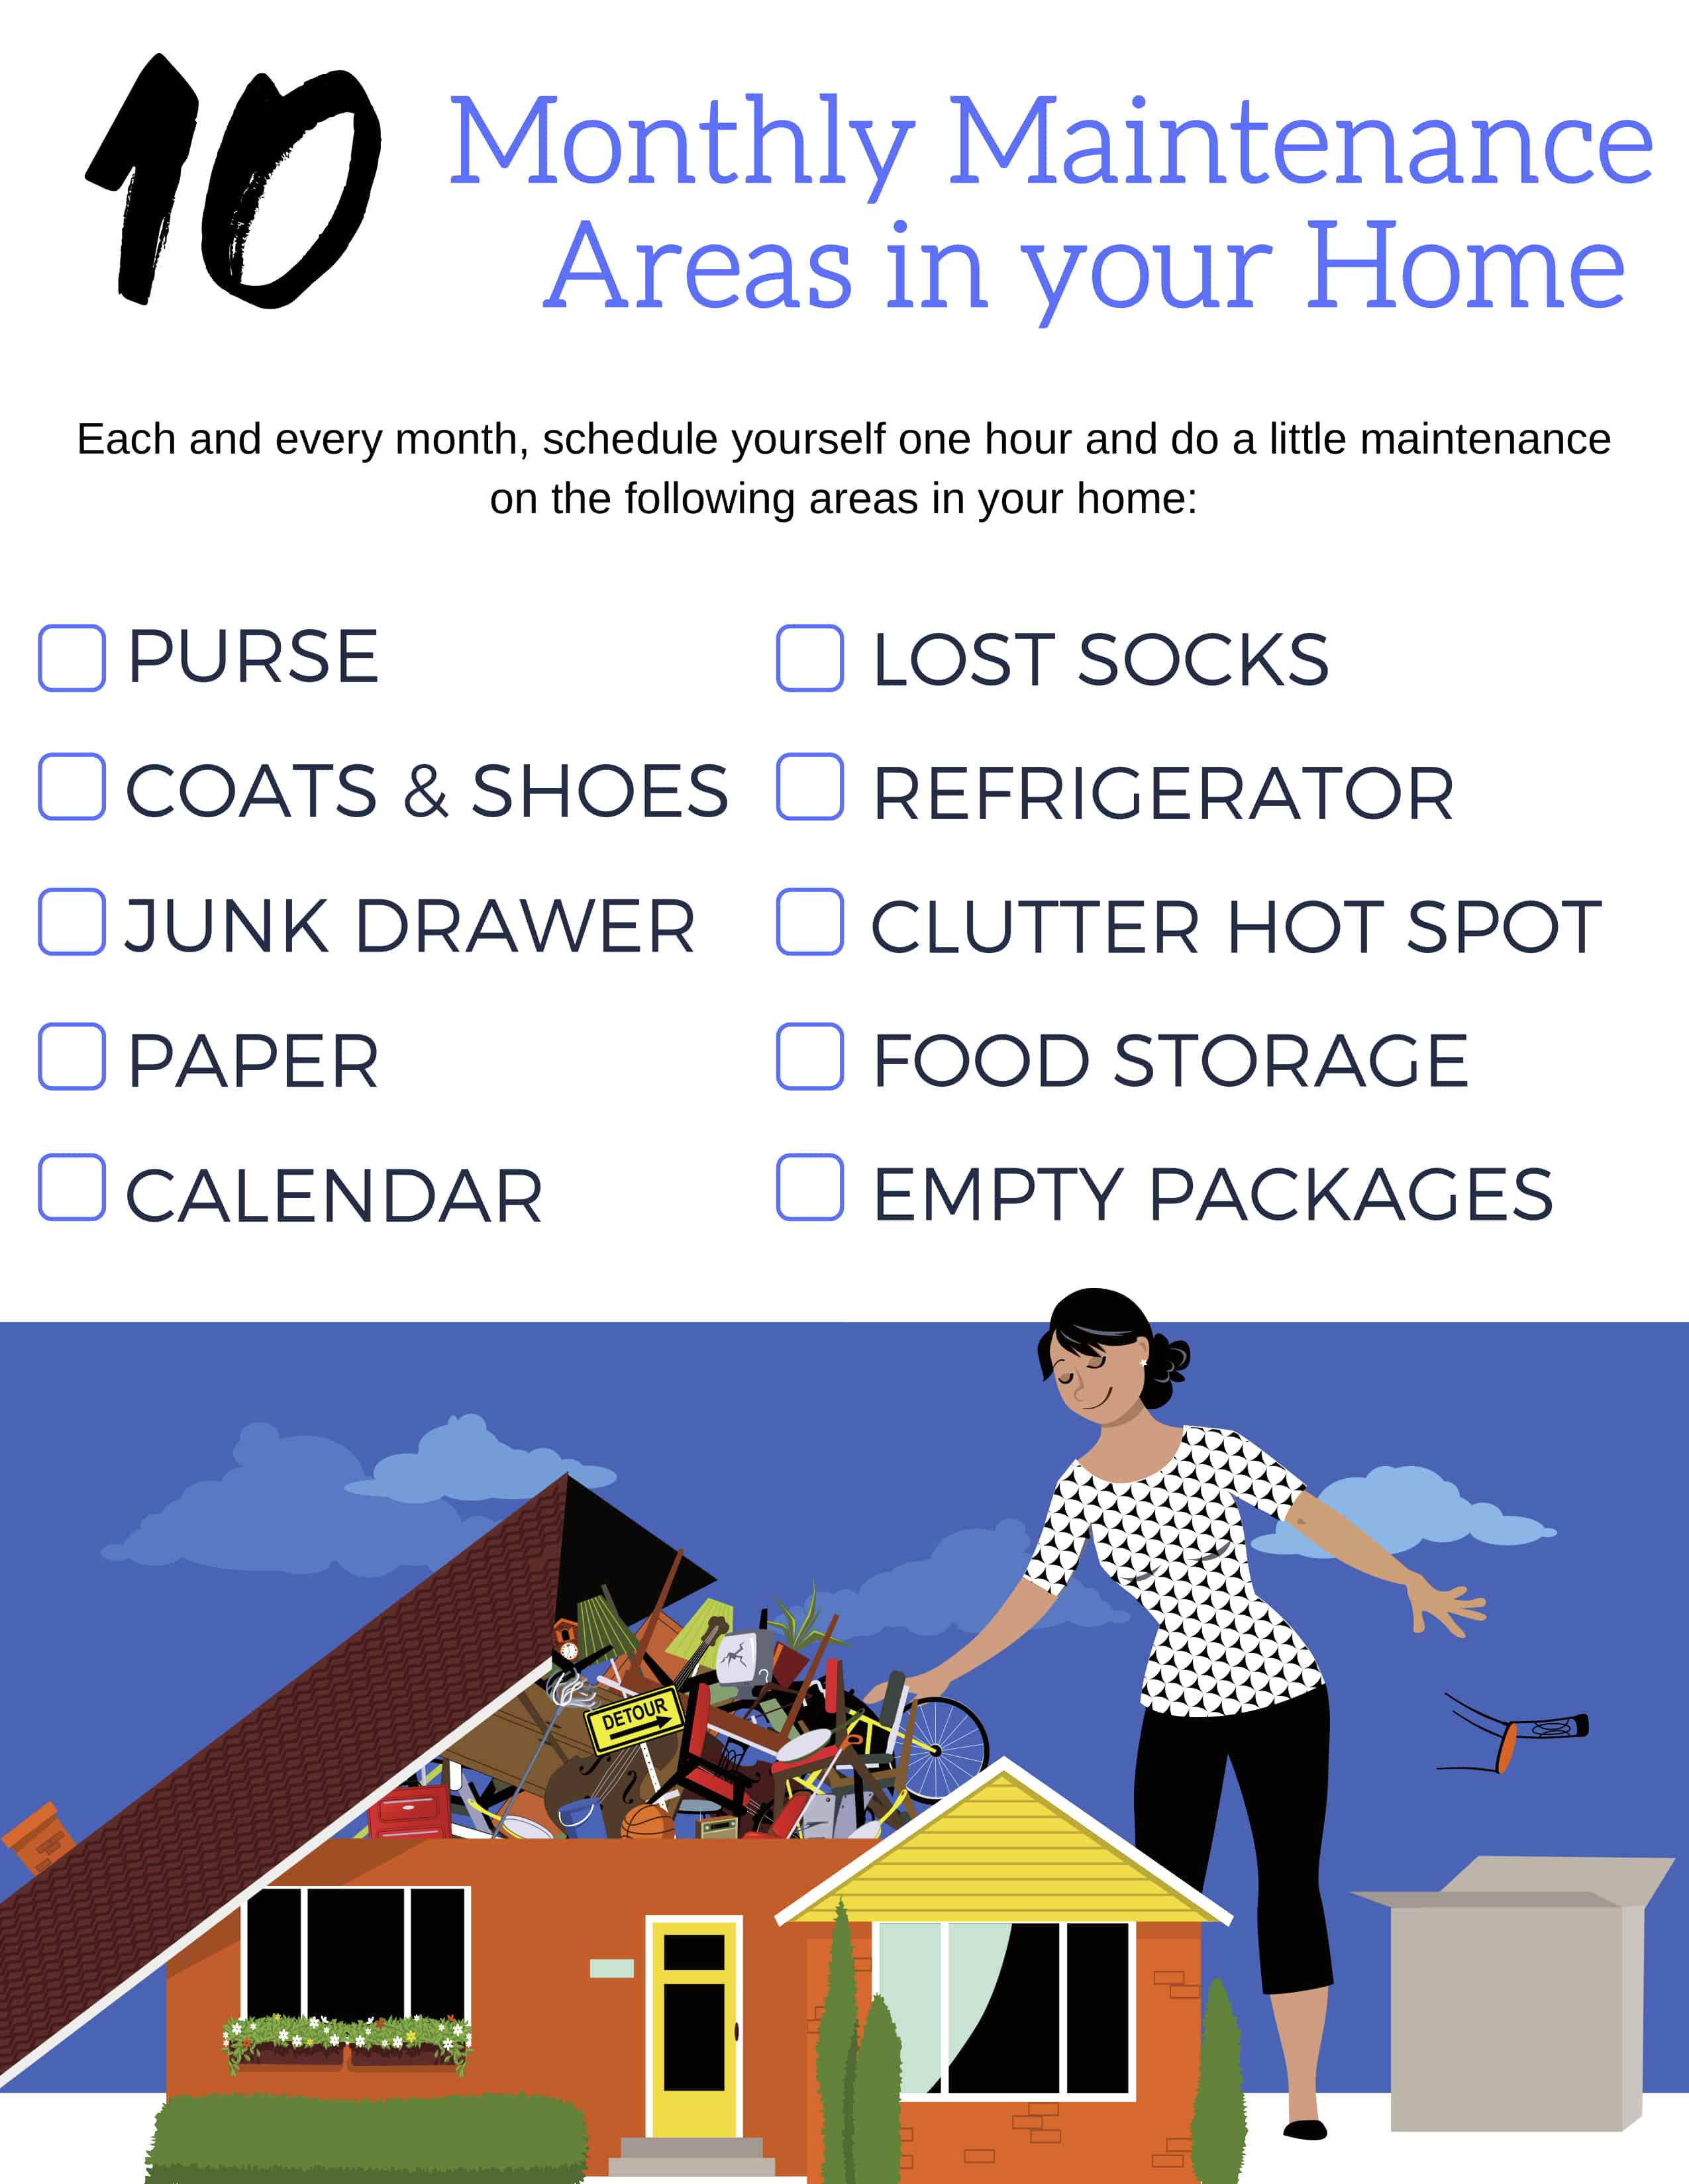 10 areas in your home that need monthly maintenance.